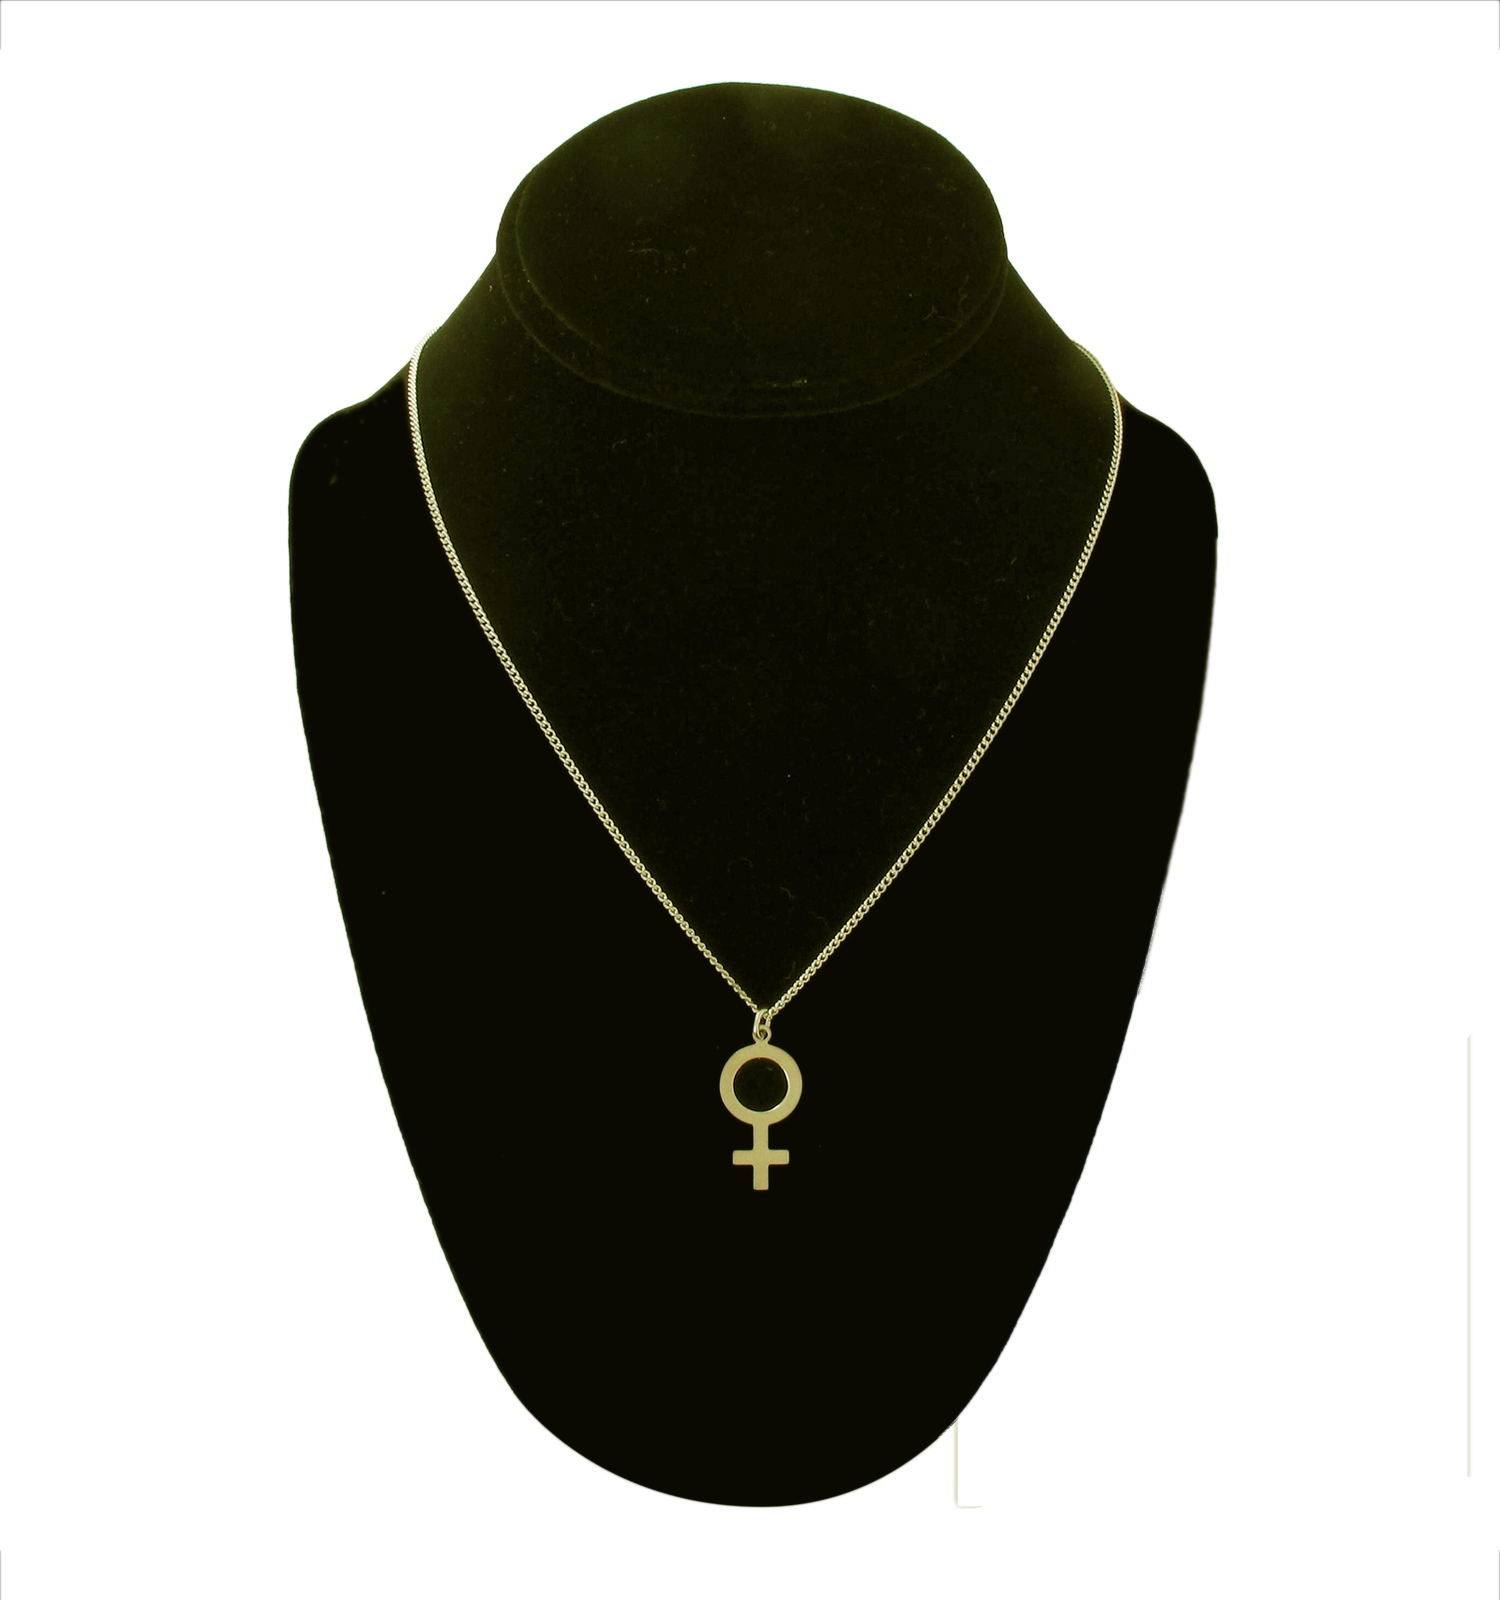 USA Made Gold Tone Feminist Female Gender Symbol Pendant Necklace